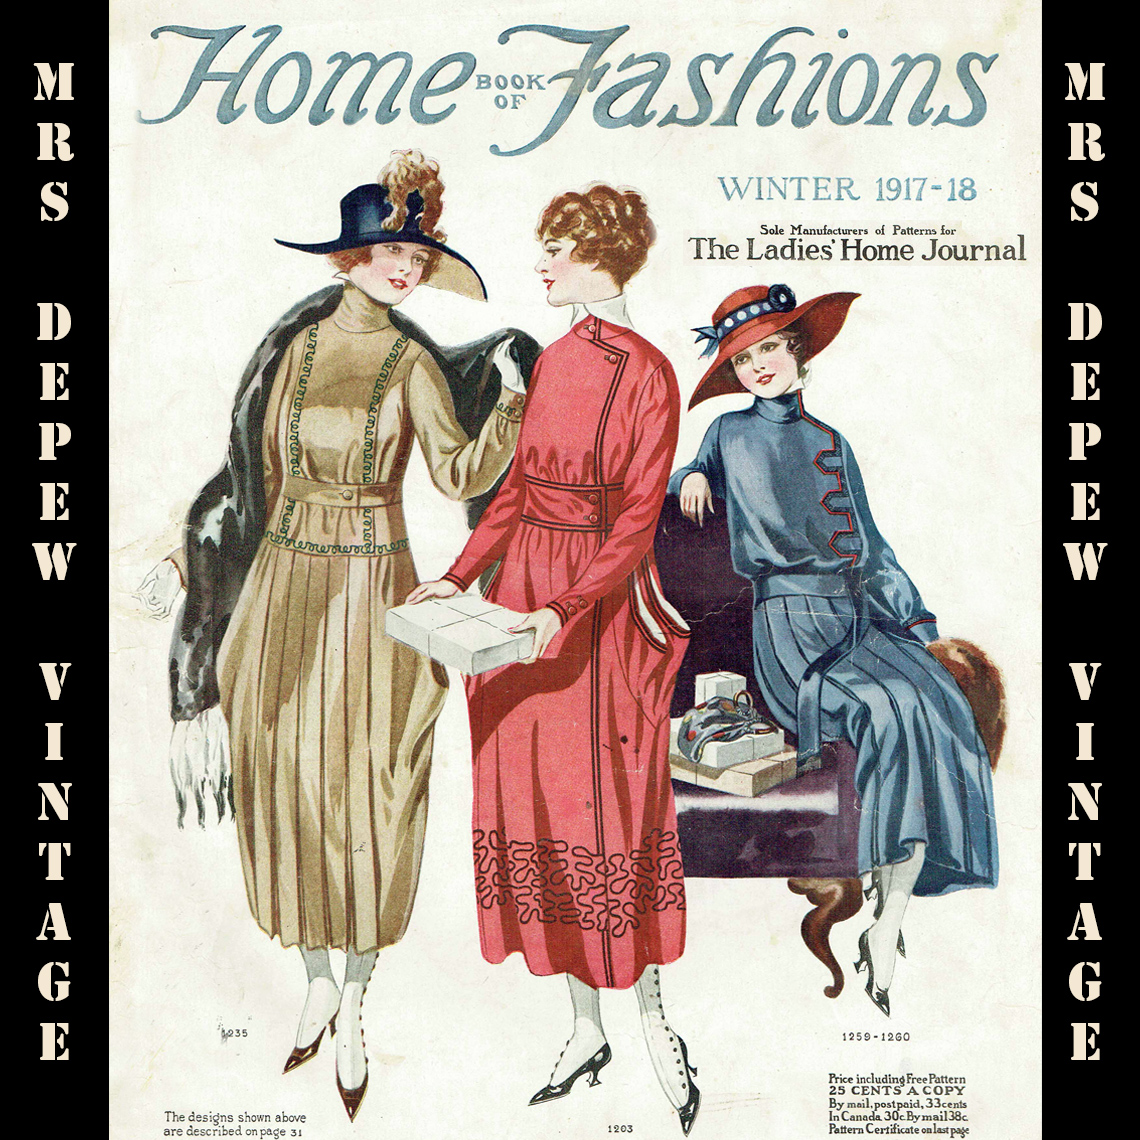 Home Book of Fashions Winter 1917-1918